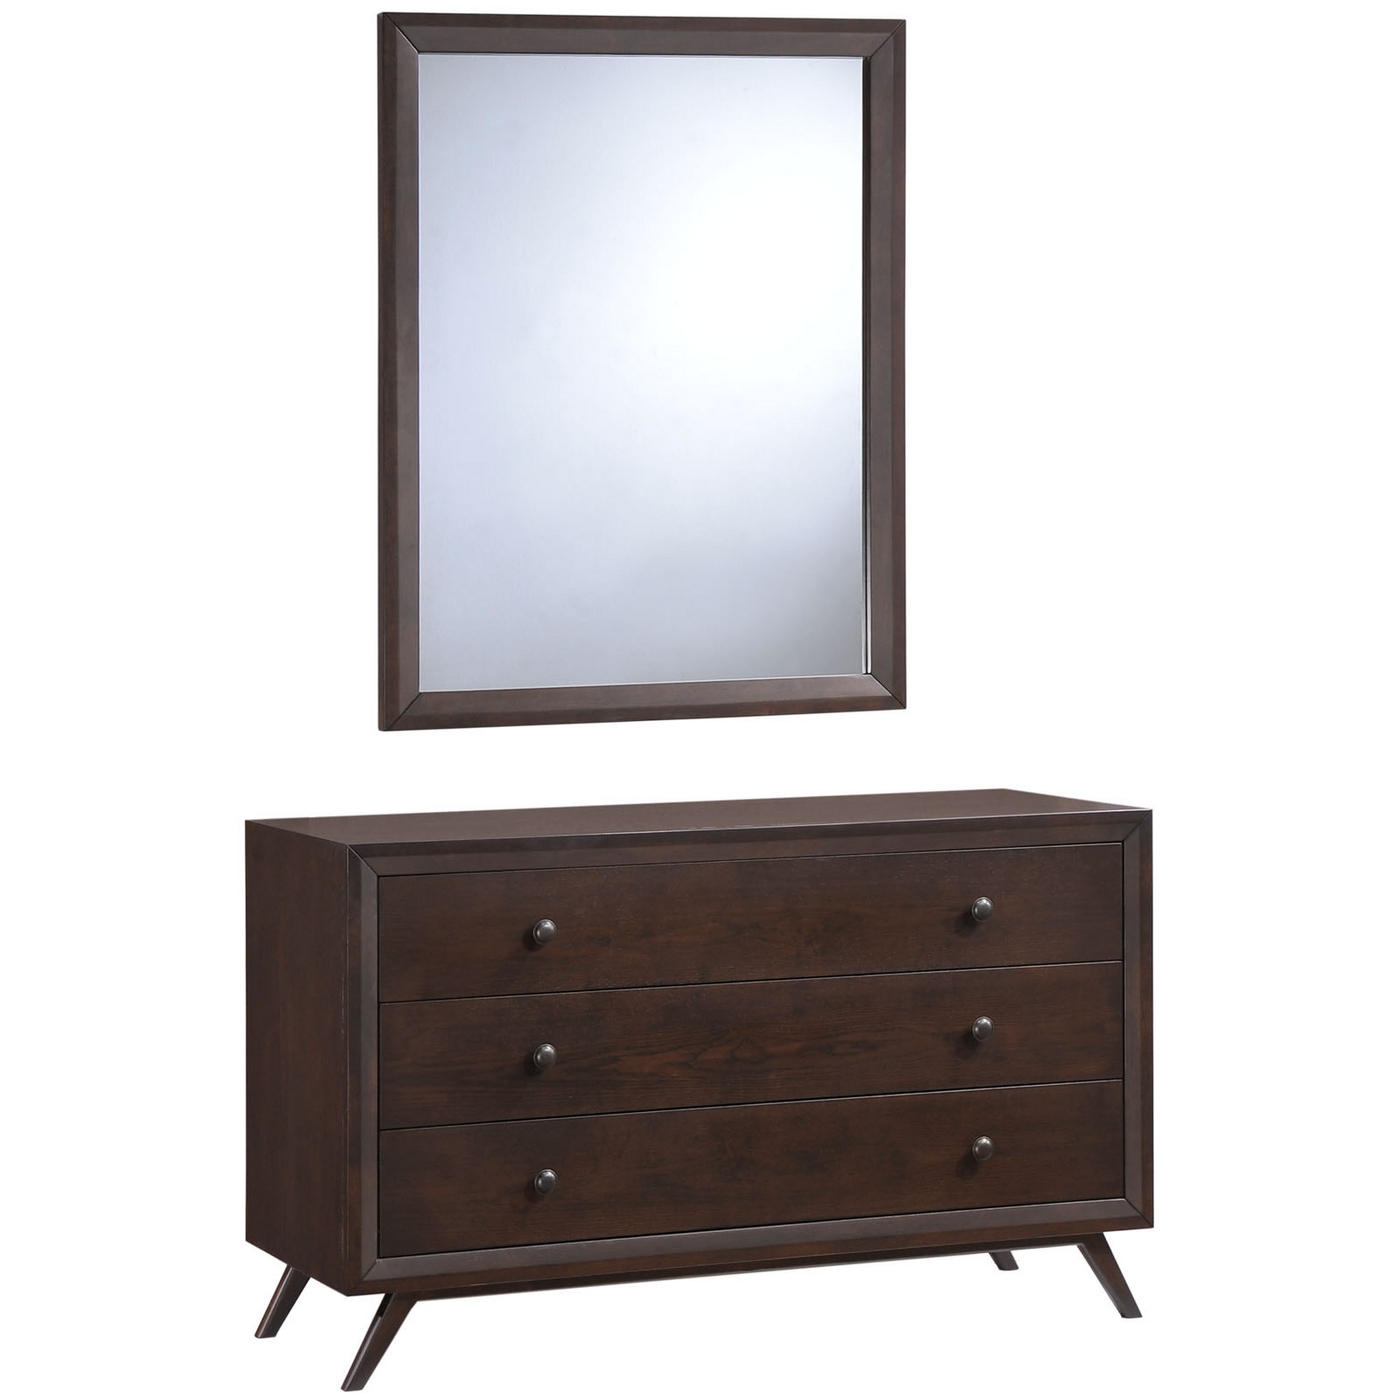 Tracy Mid Centurn 3 Drawer Dresser And Mirror Cappuccino Mod 5310 Cap Set on Ay Dresser Furniture